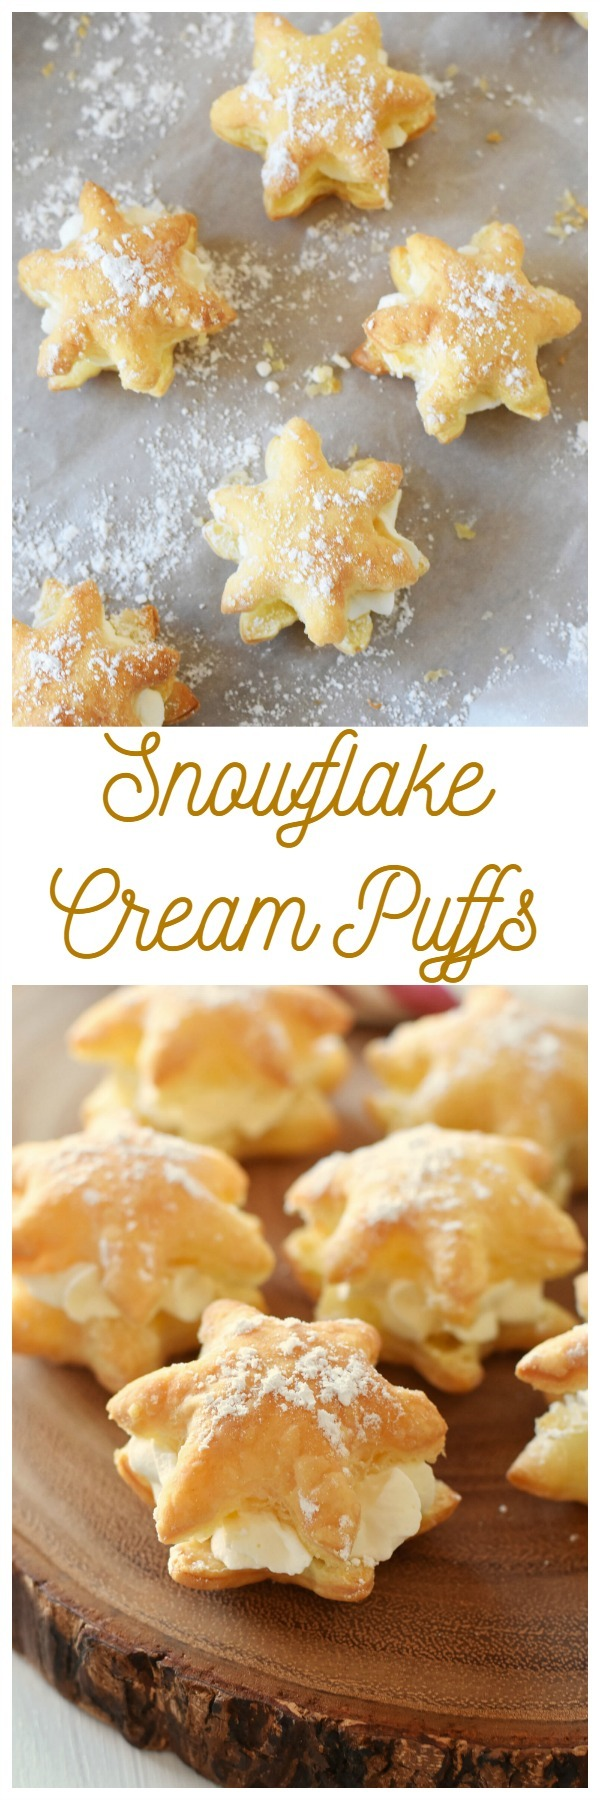 snowflake-cream-puffs-pin